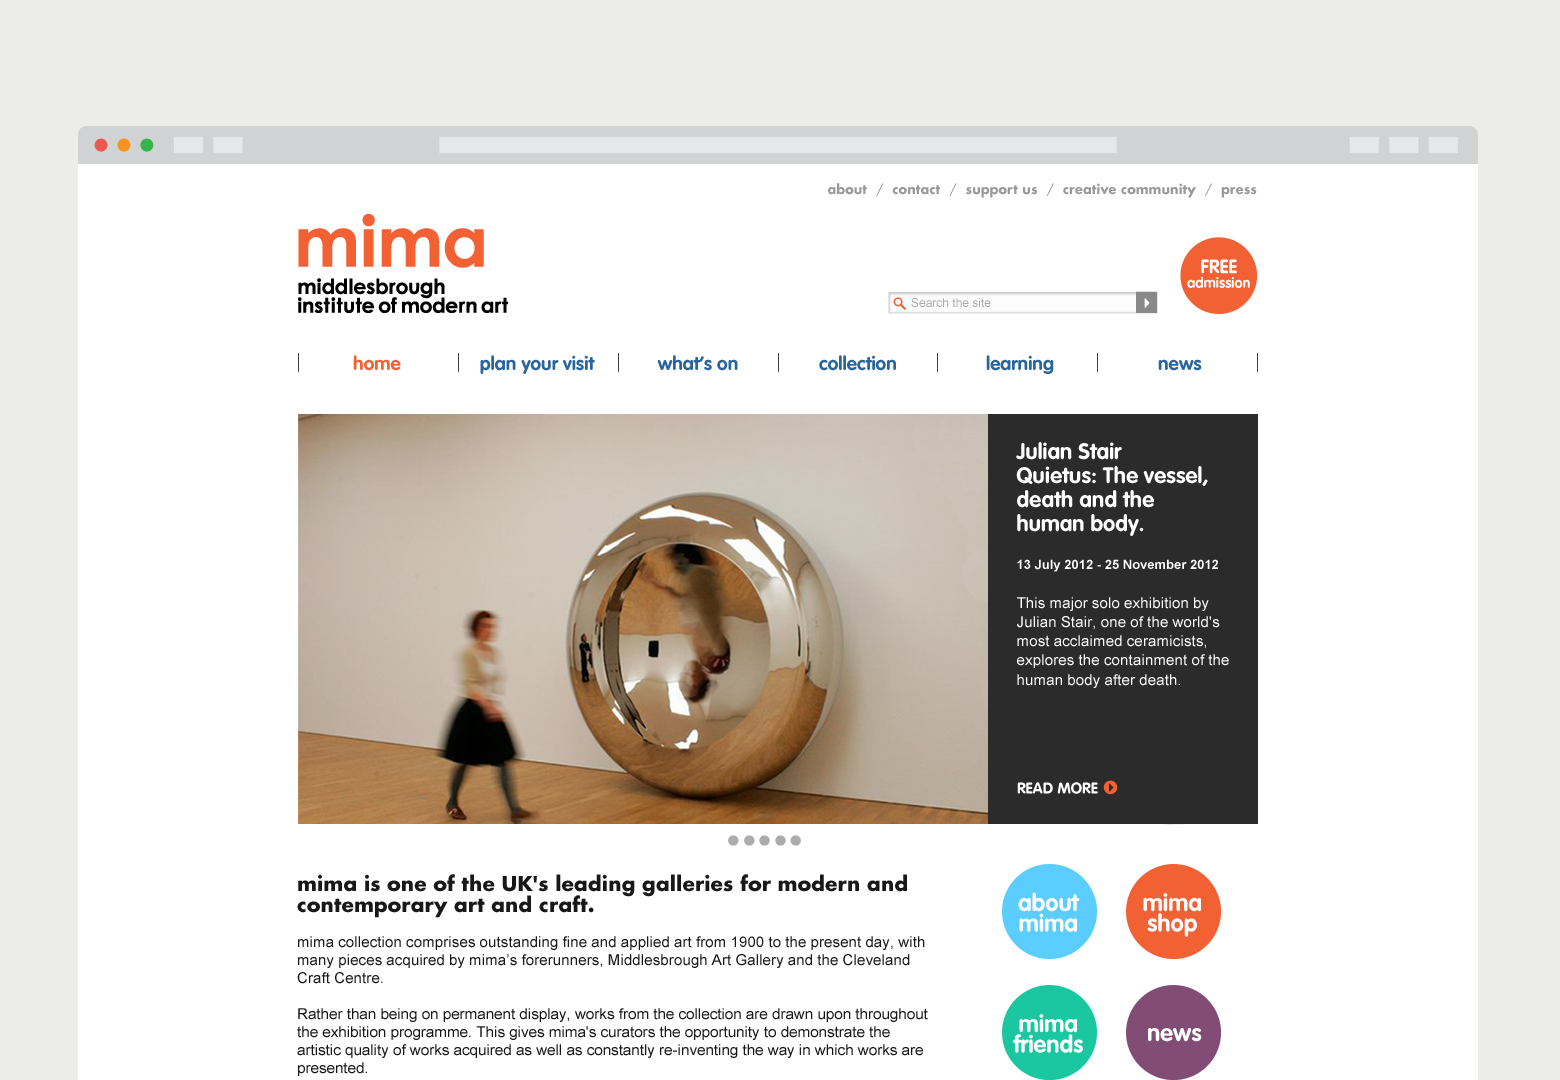 mima (Middlesbrough Institute of Modern Art)